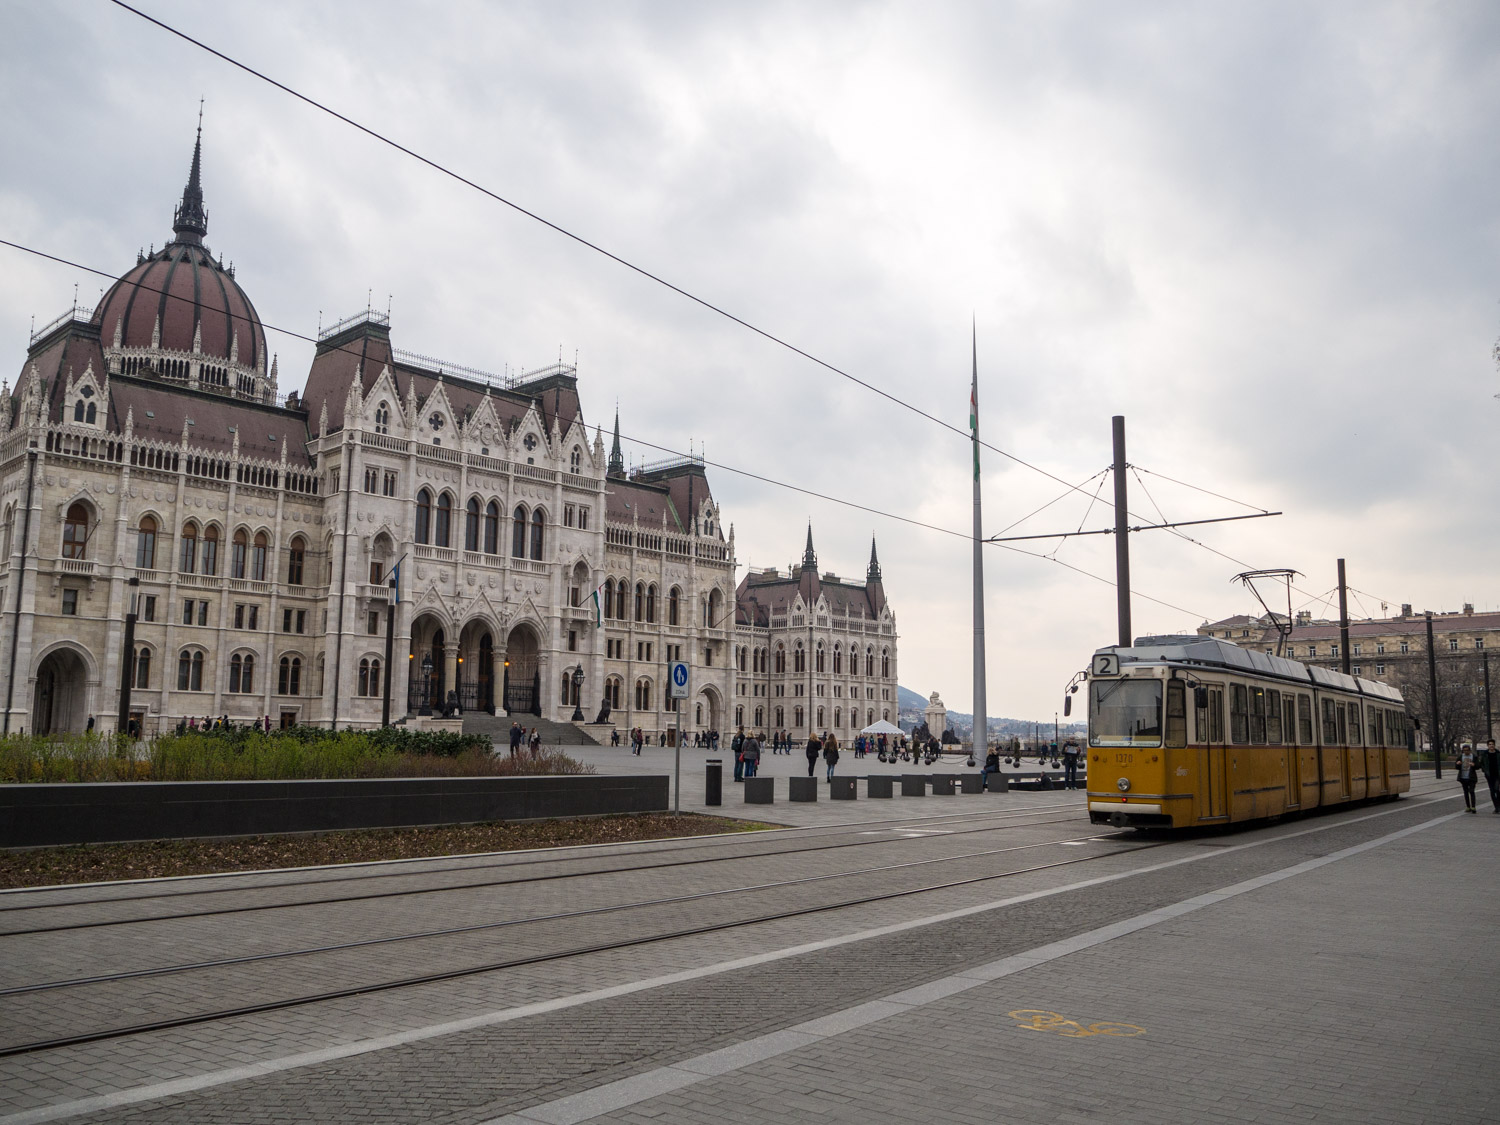 Number 2 tram passes in front of Hungary's Parliament in Budapest.